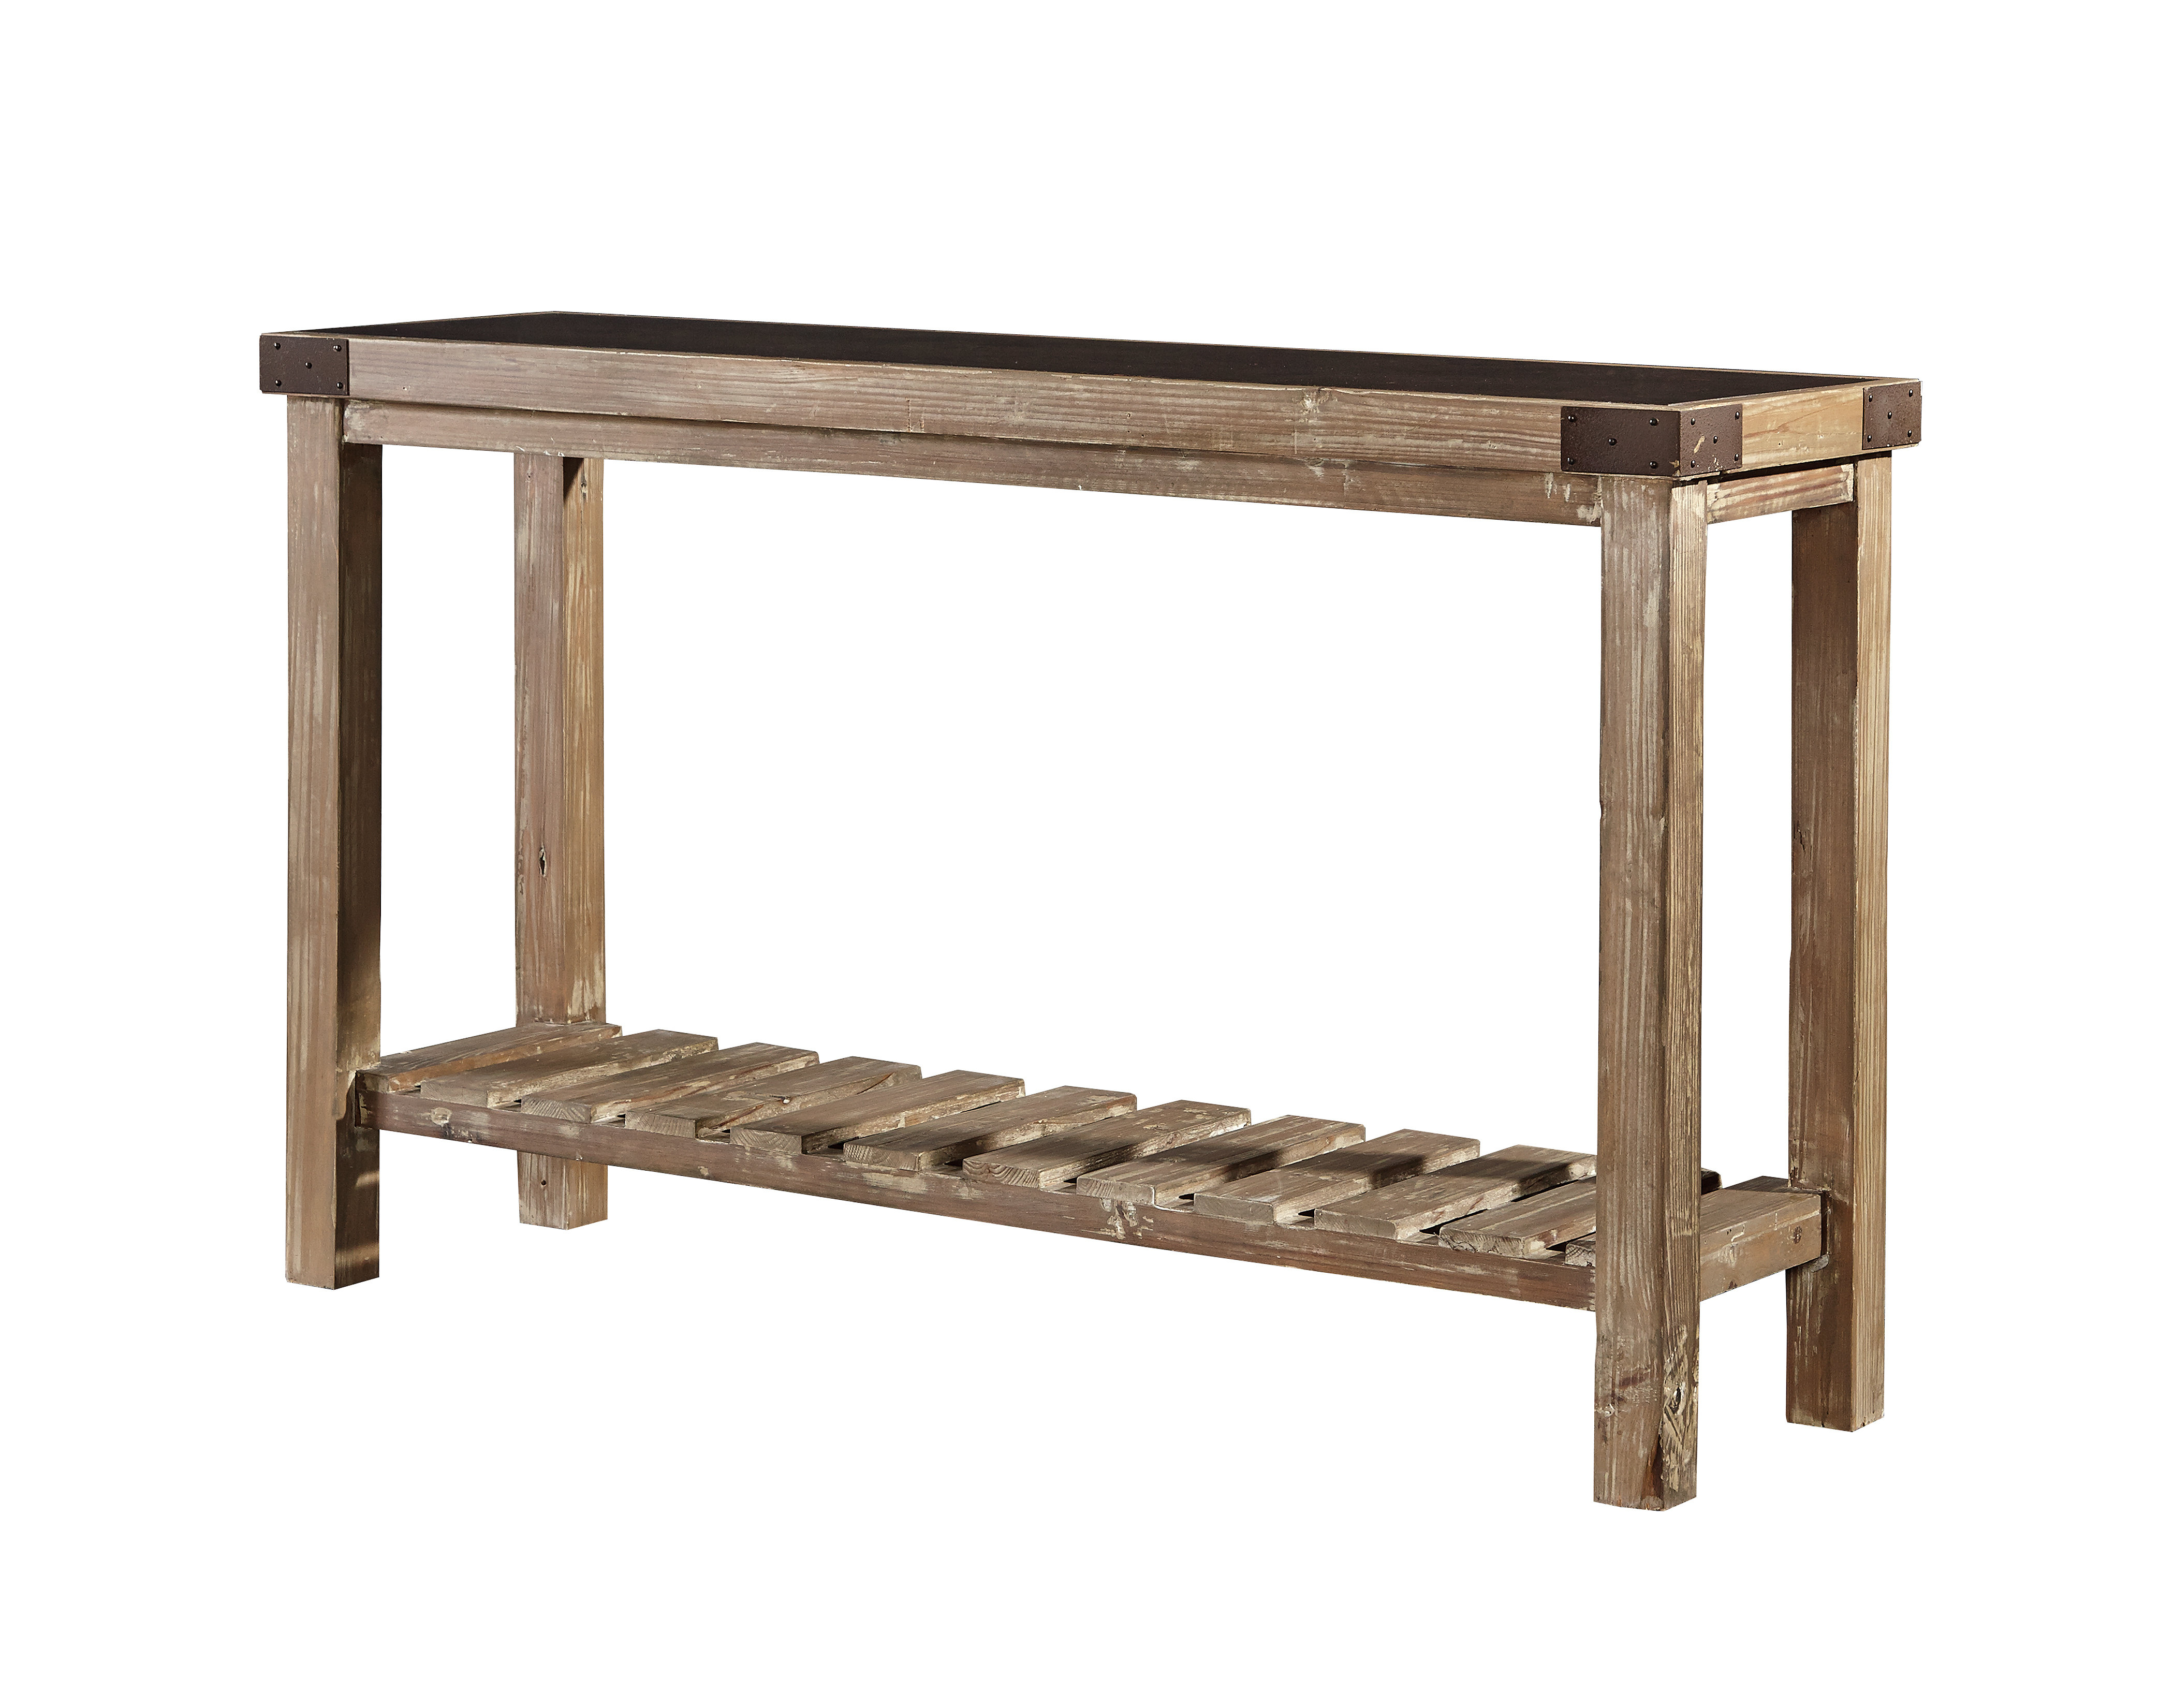 Gracie Oaks Warkworth Bluestone Top Console Table | Wayfair Intended For Bluestone Console Tables (View 4 of 20)